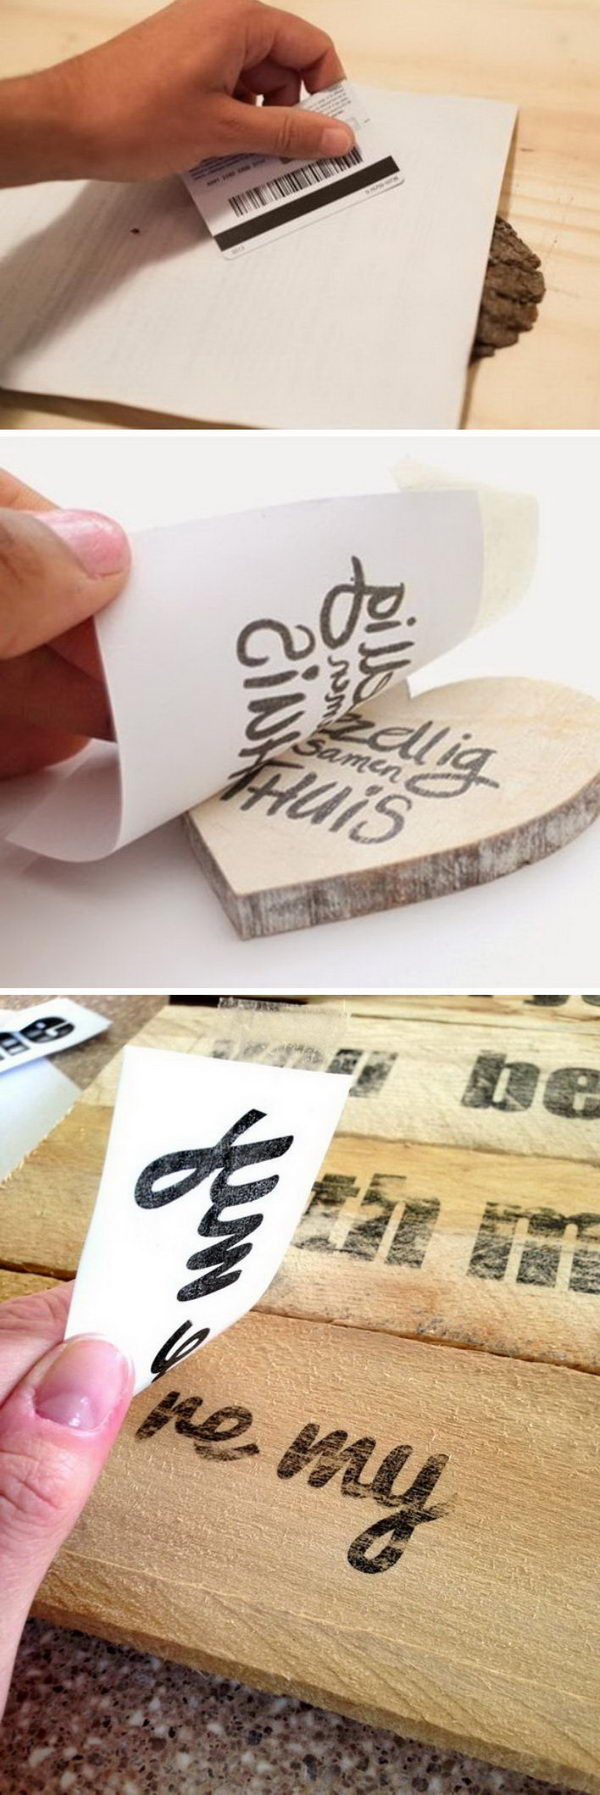 Awesome DIY Image Transfer Projects.